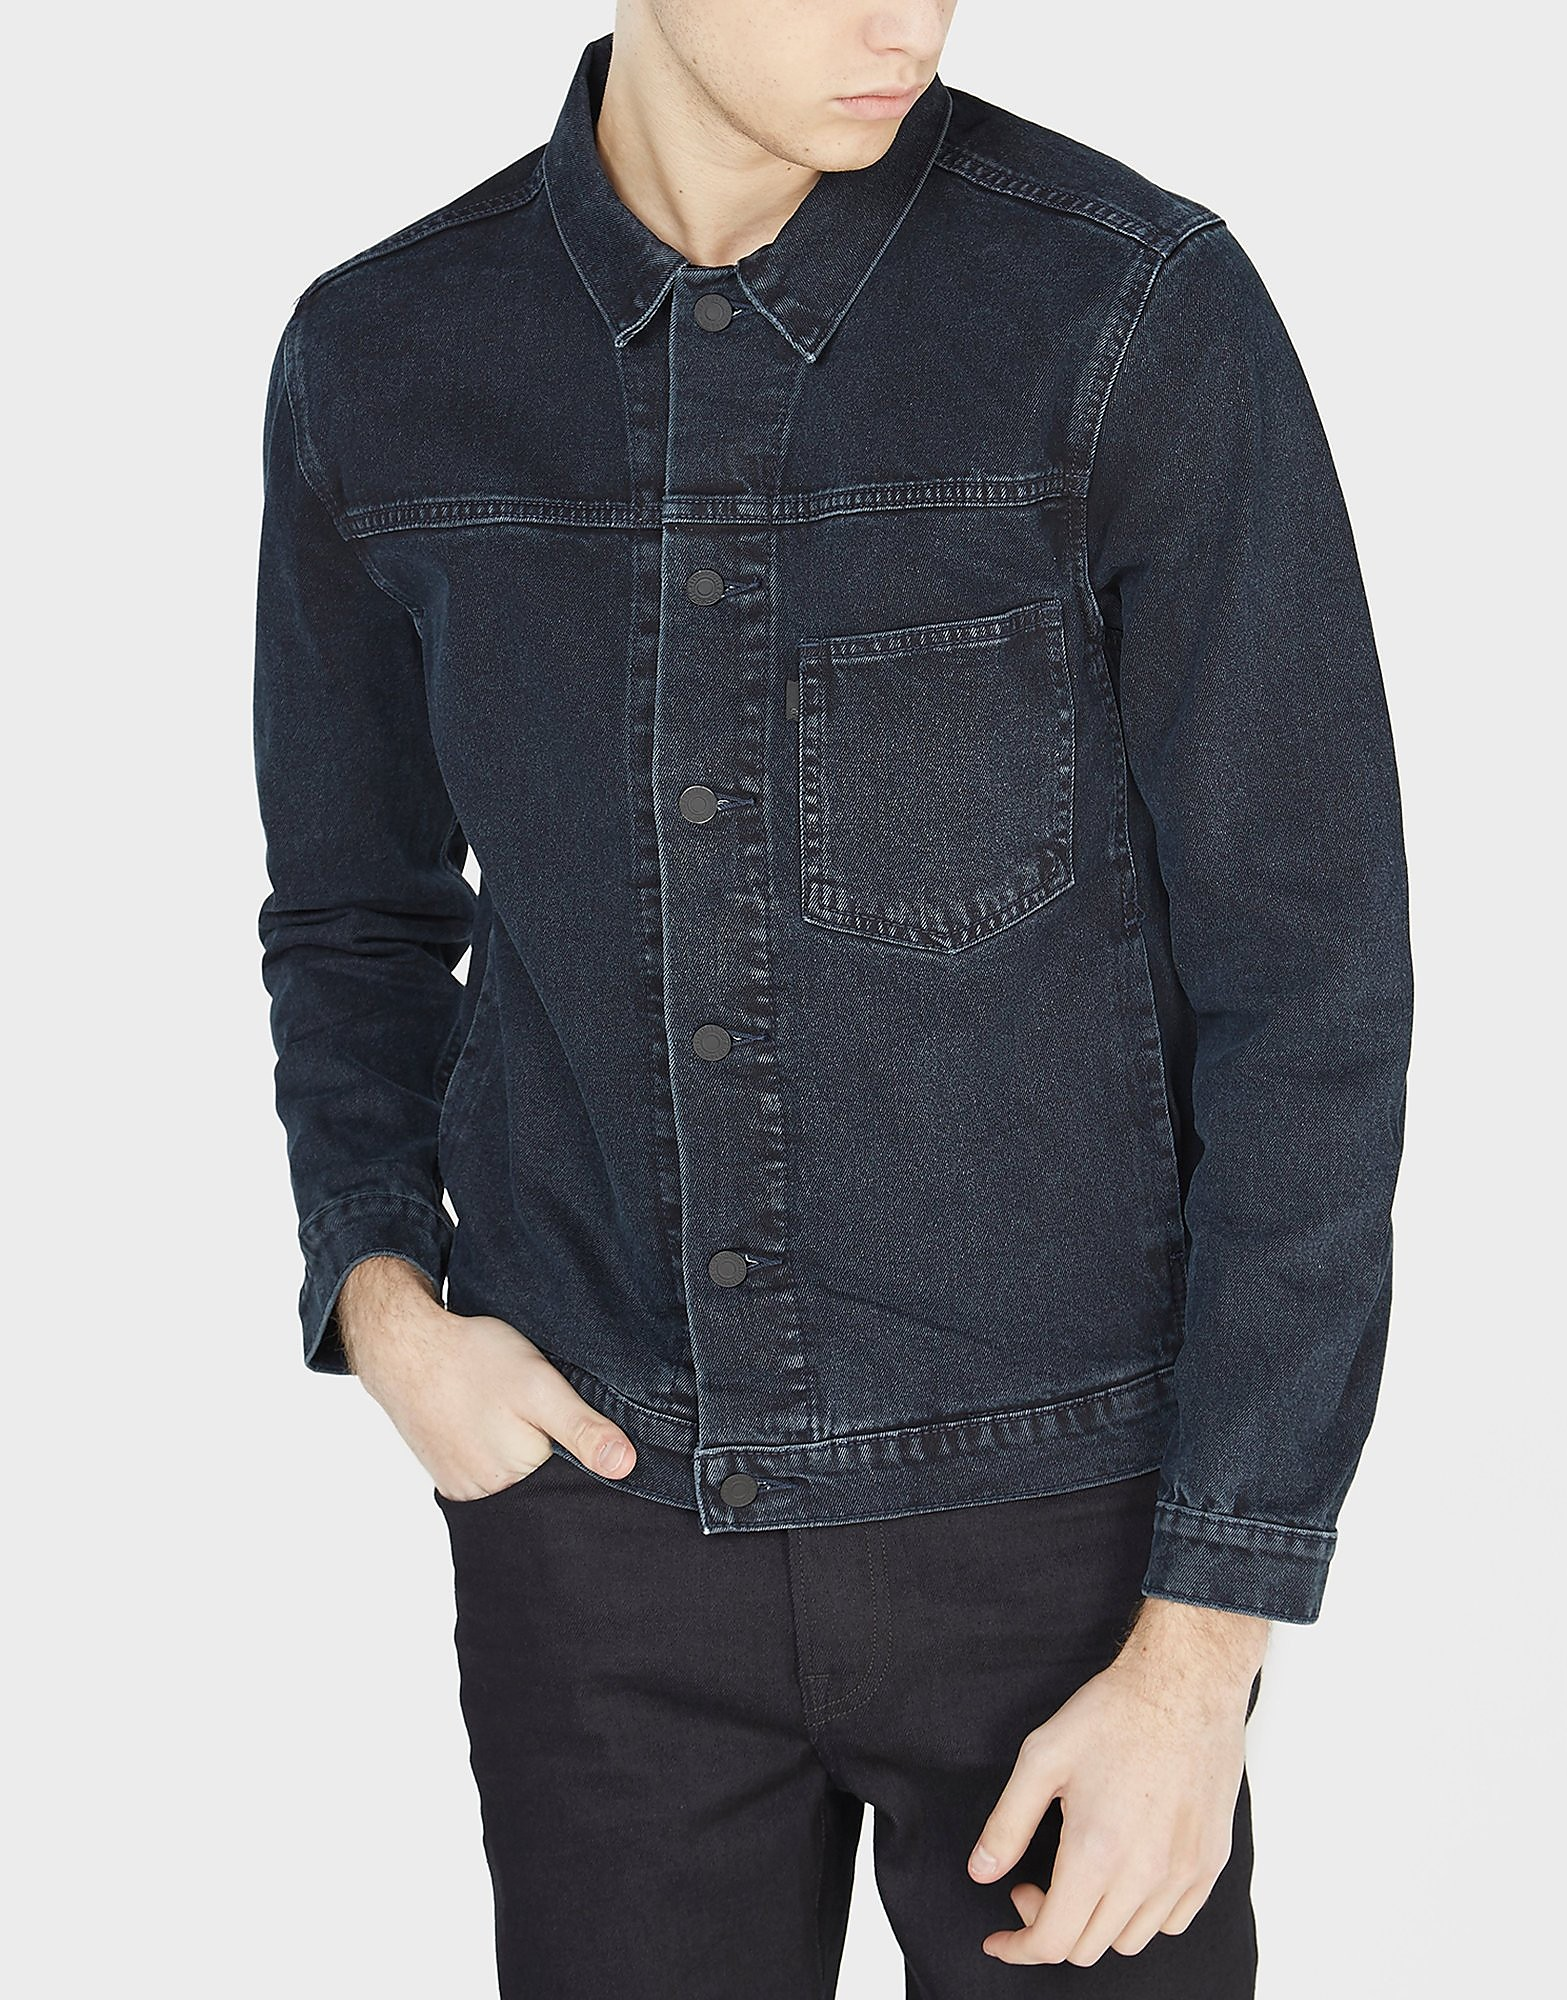 Levis Trucker Lightweight Jacket